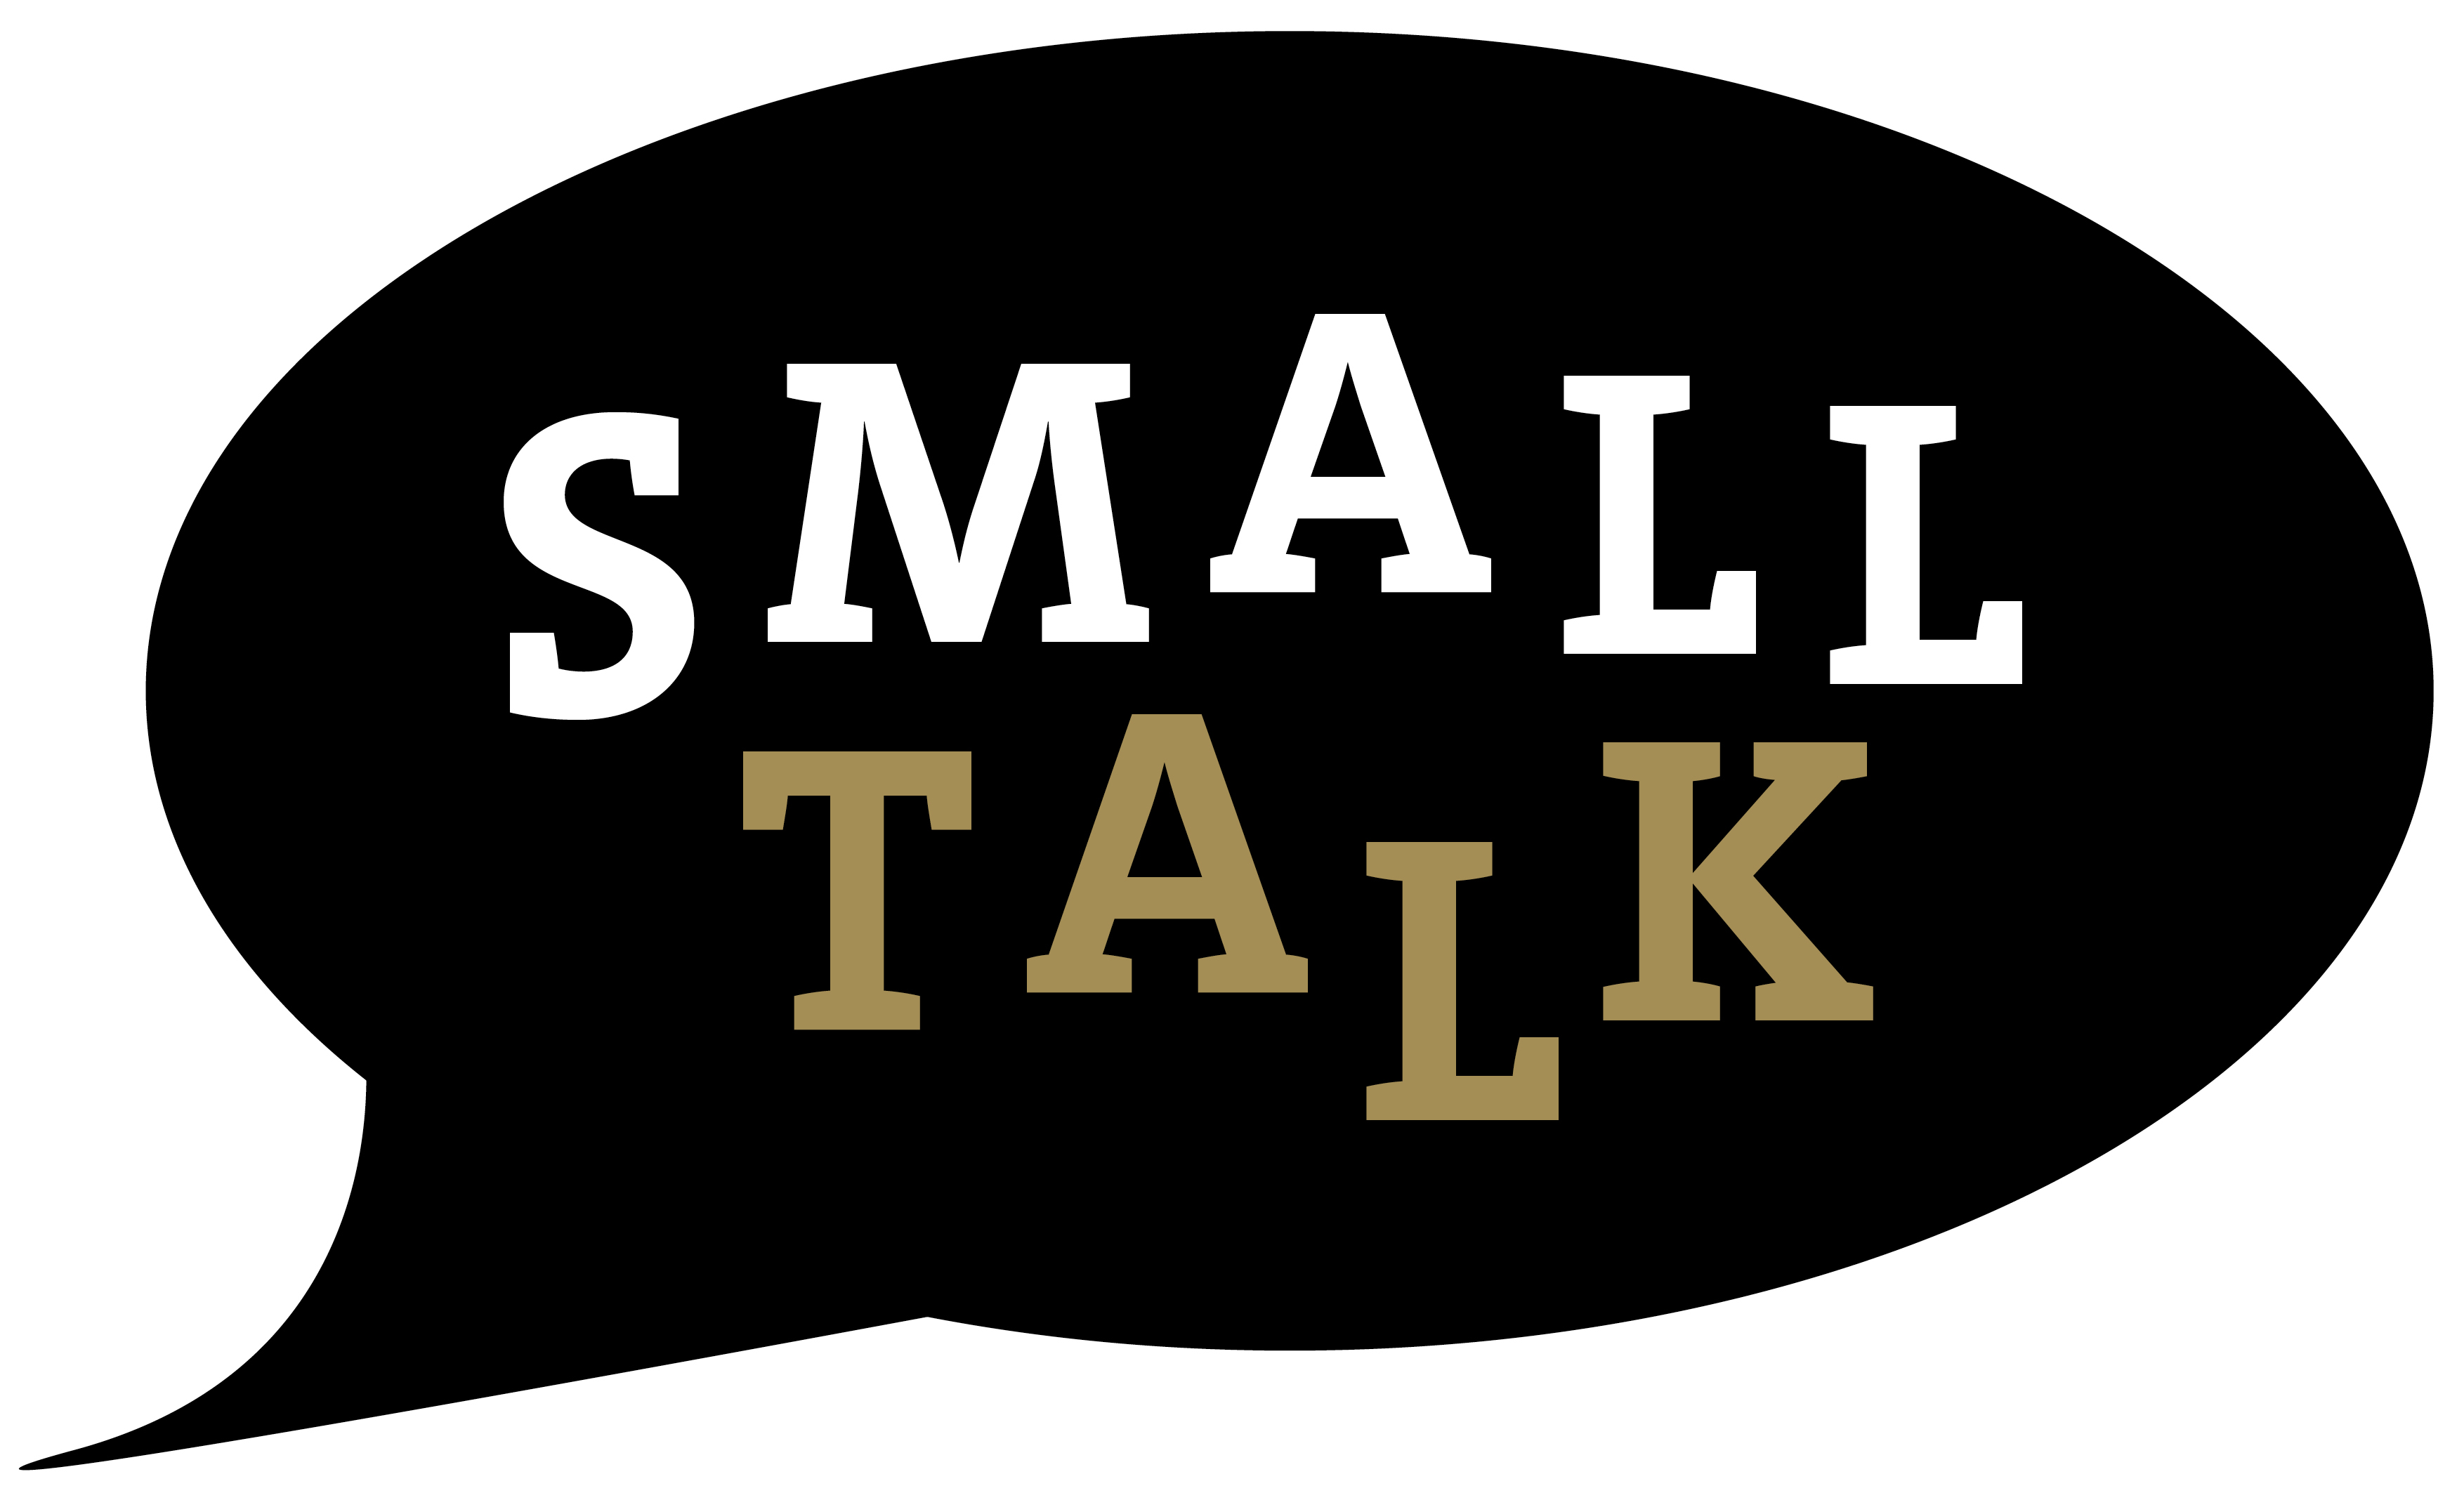 small talk Small talk vineyards, niagara-on-the-lake, on 23k likes introducing small talk vineyards a series of distinctive vqa wines that expose the dramatic.